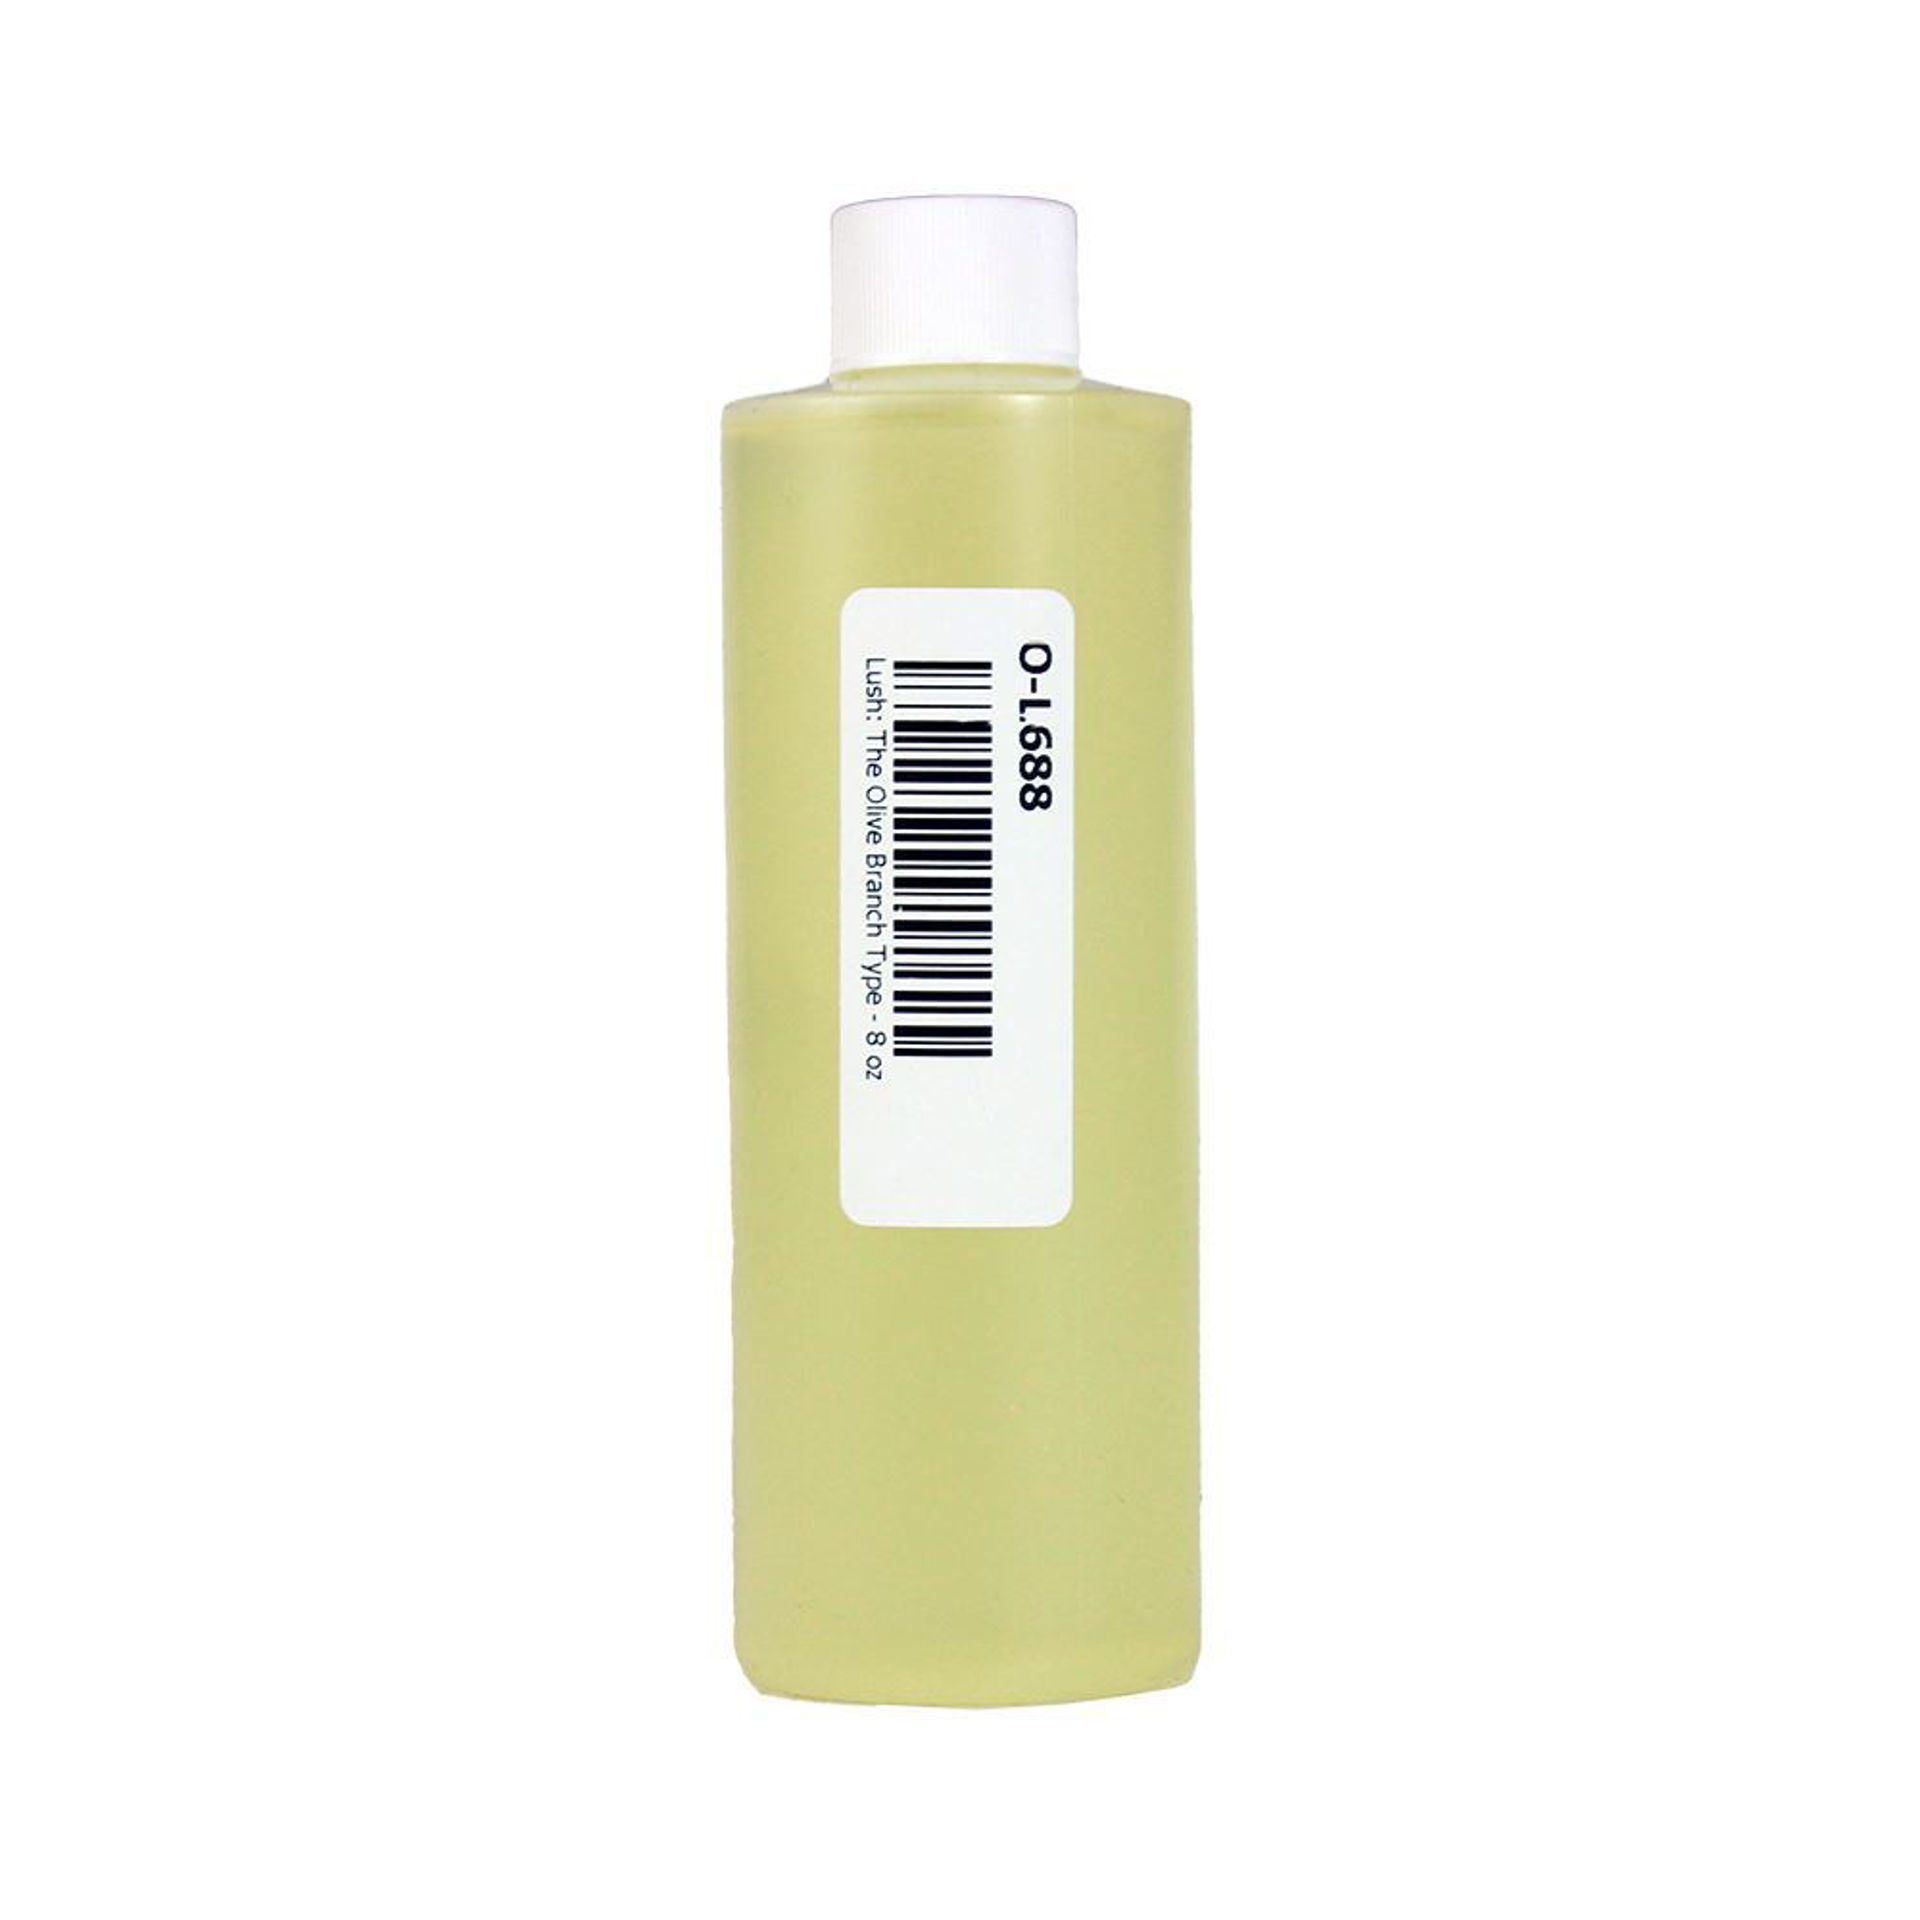 Picture of Lush: The Olive Branch Type - 8 oz